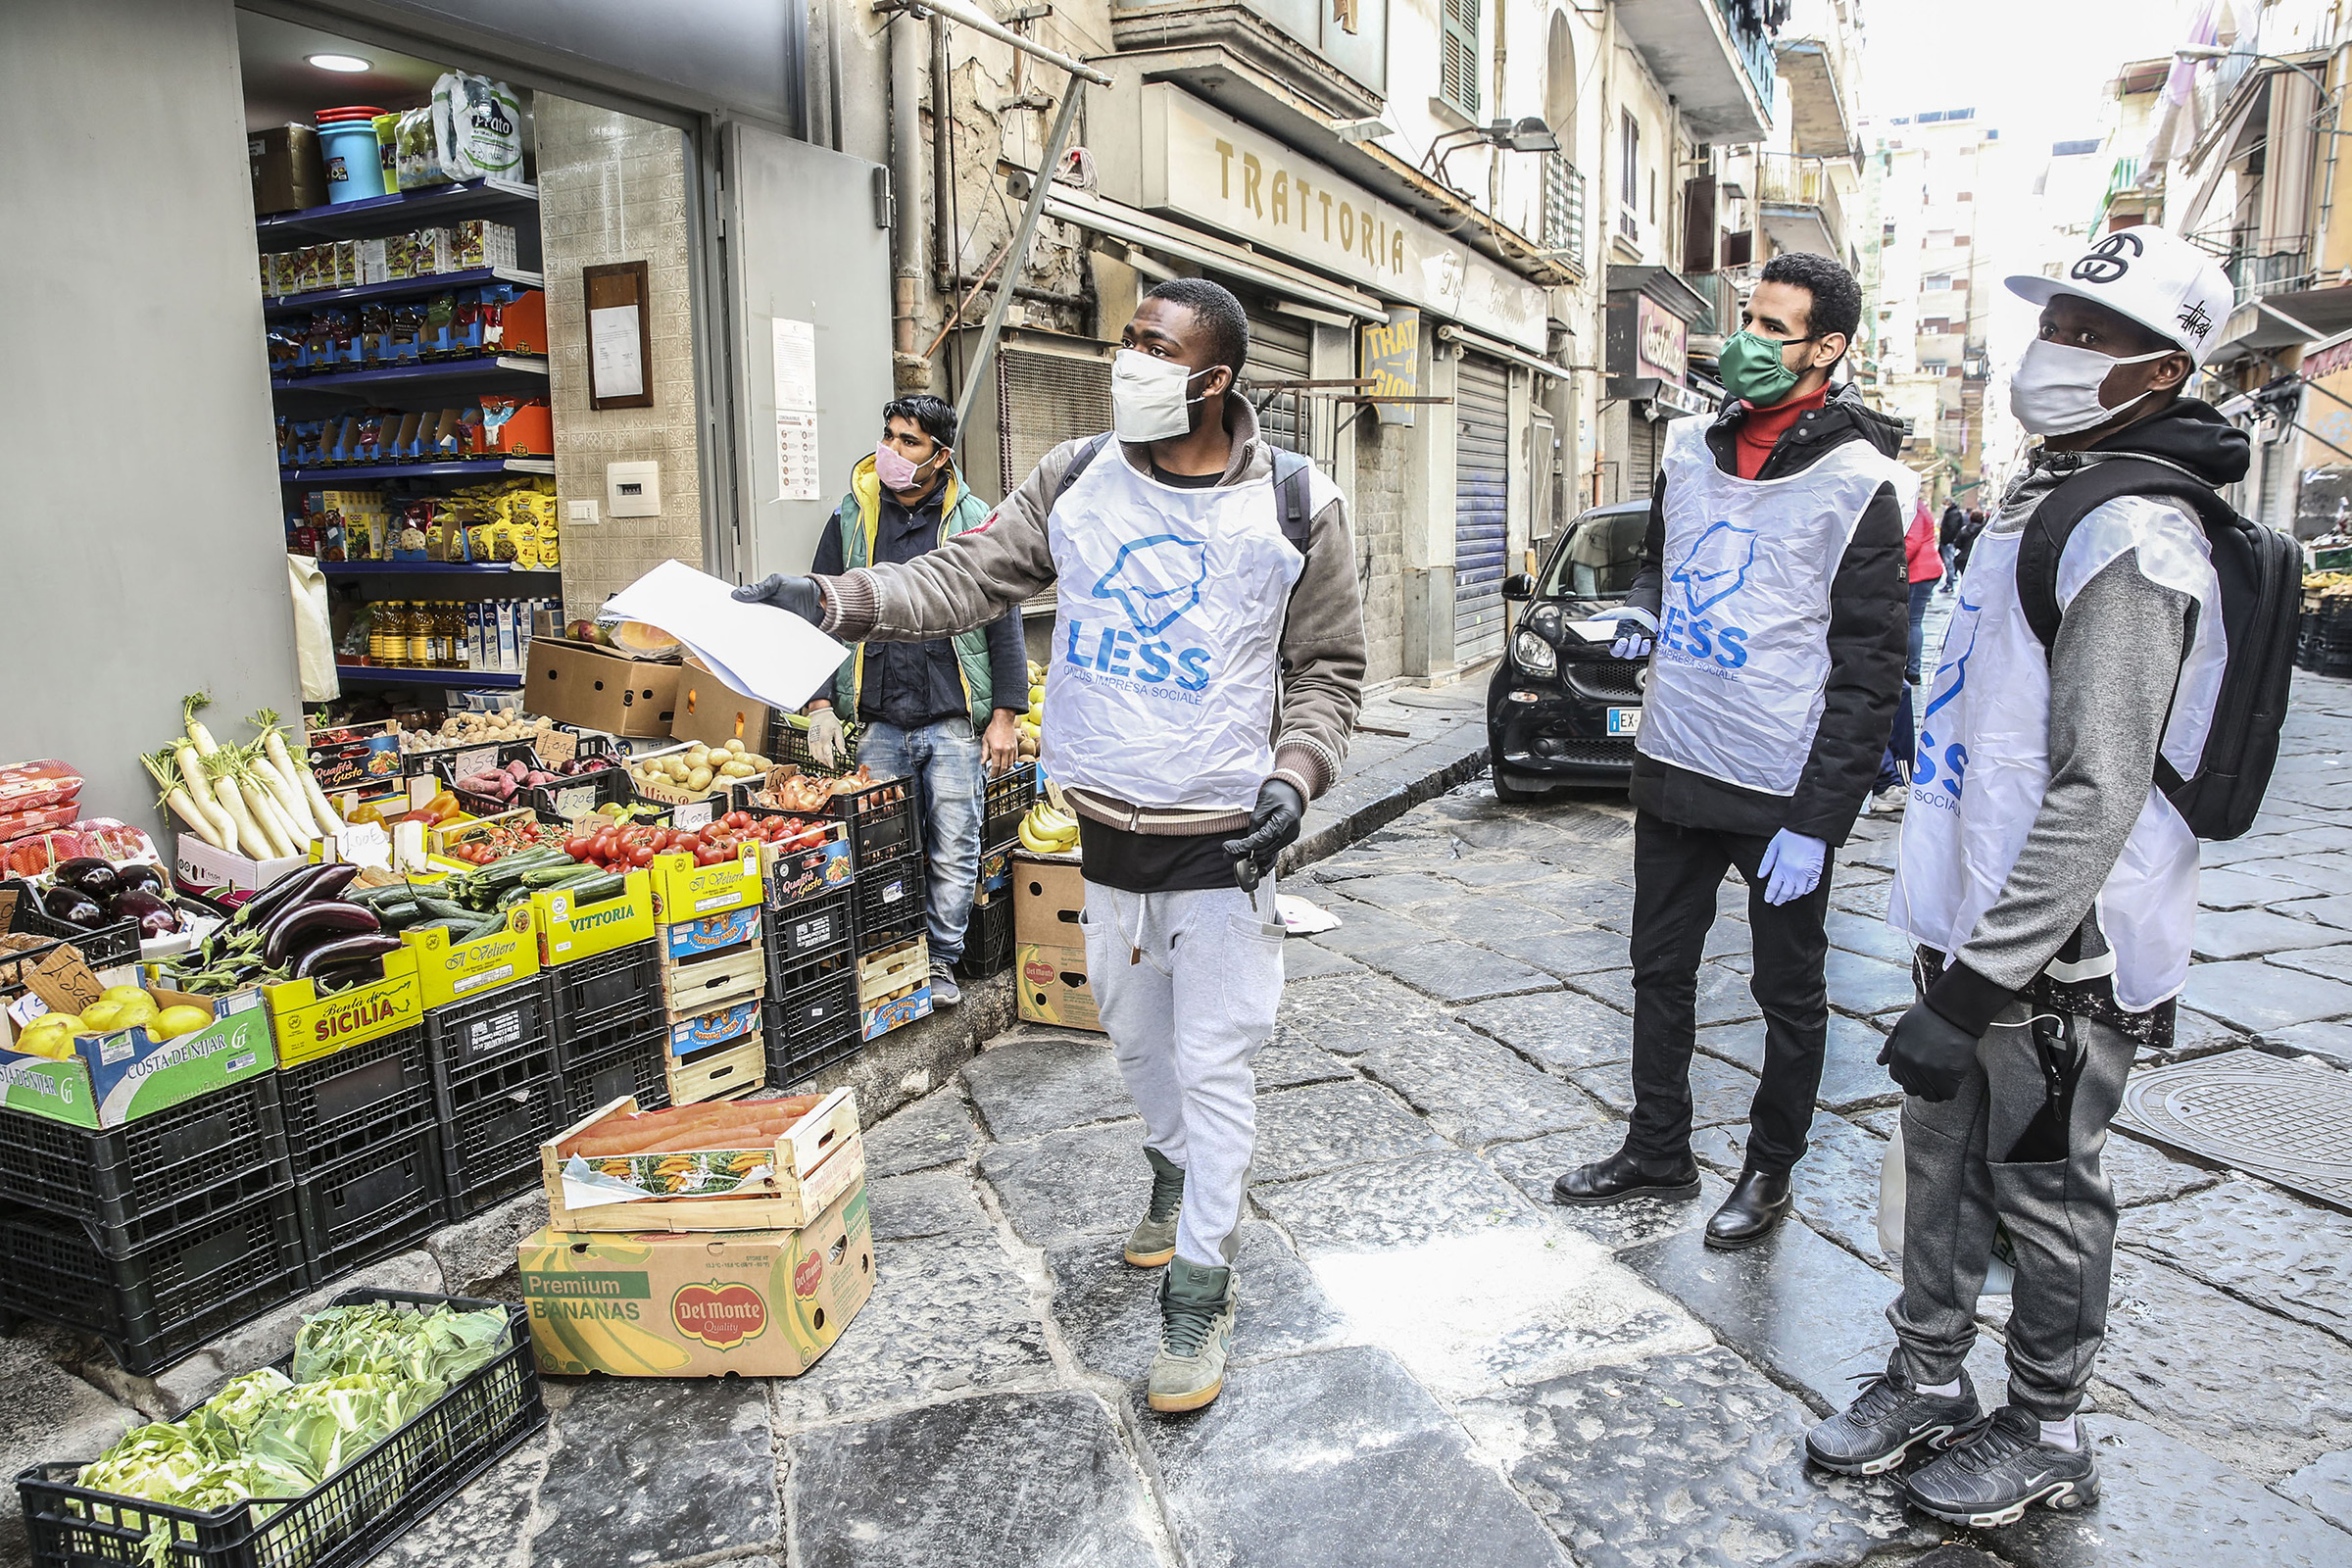 A group of migrants, who collaborate as volunteers with the Less cooperative, bring bags of food and medicine to the home of older people, or who cannot go shopping, due to government restrictions or for fear of coronavirus infection.